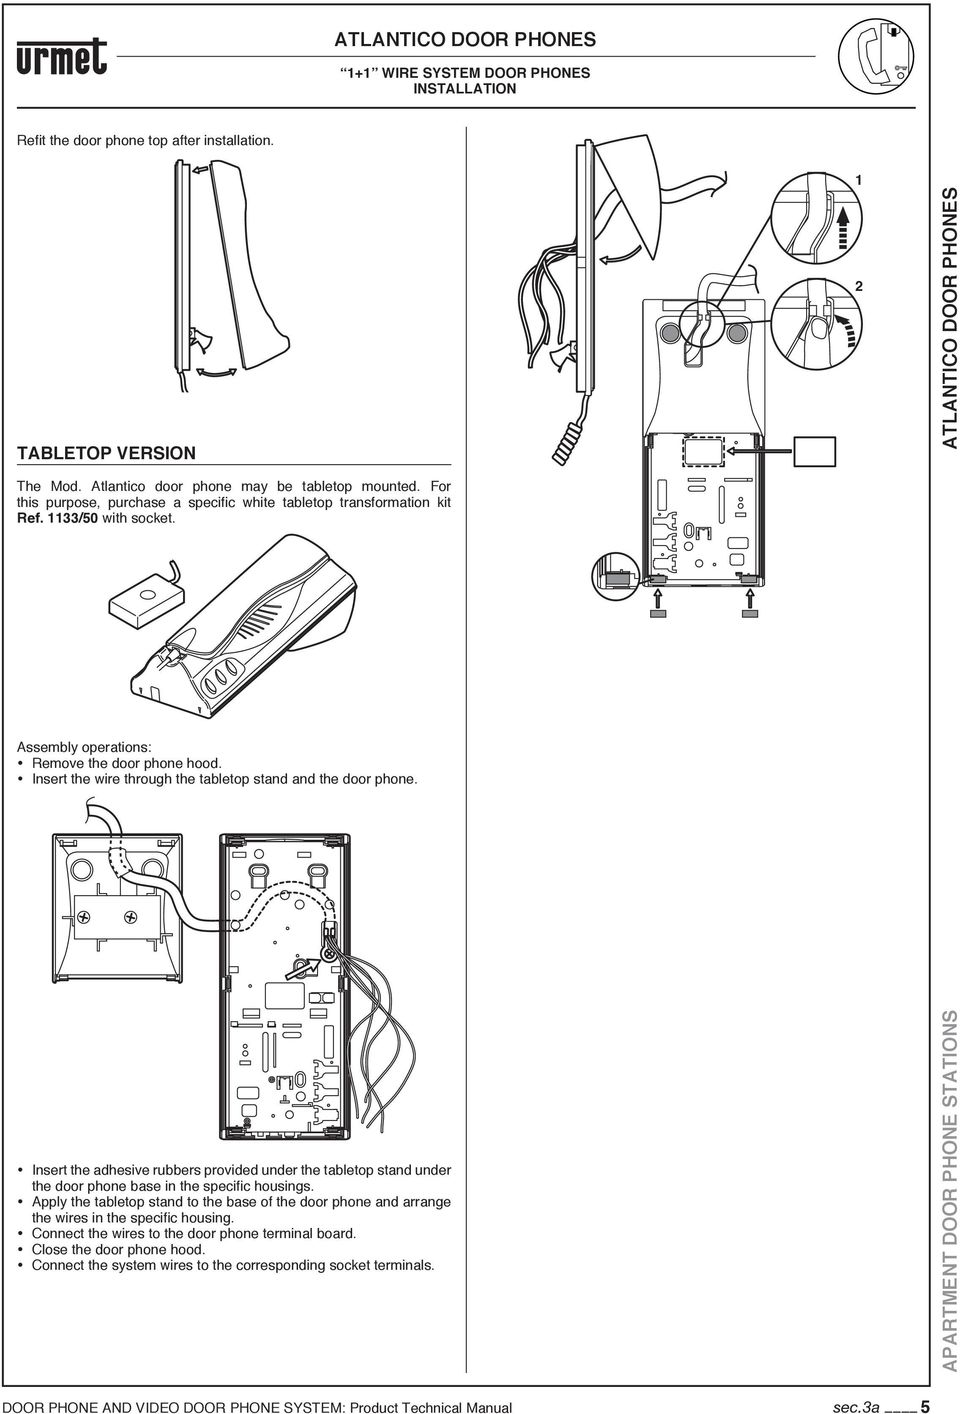 nortel door phone wiring diagram